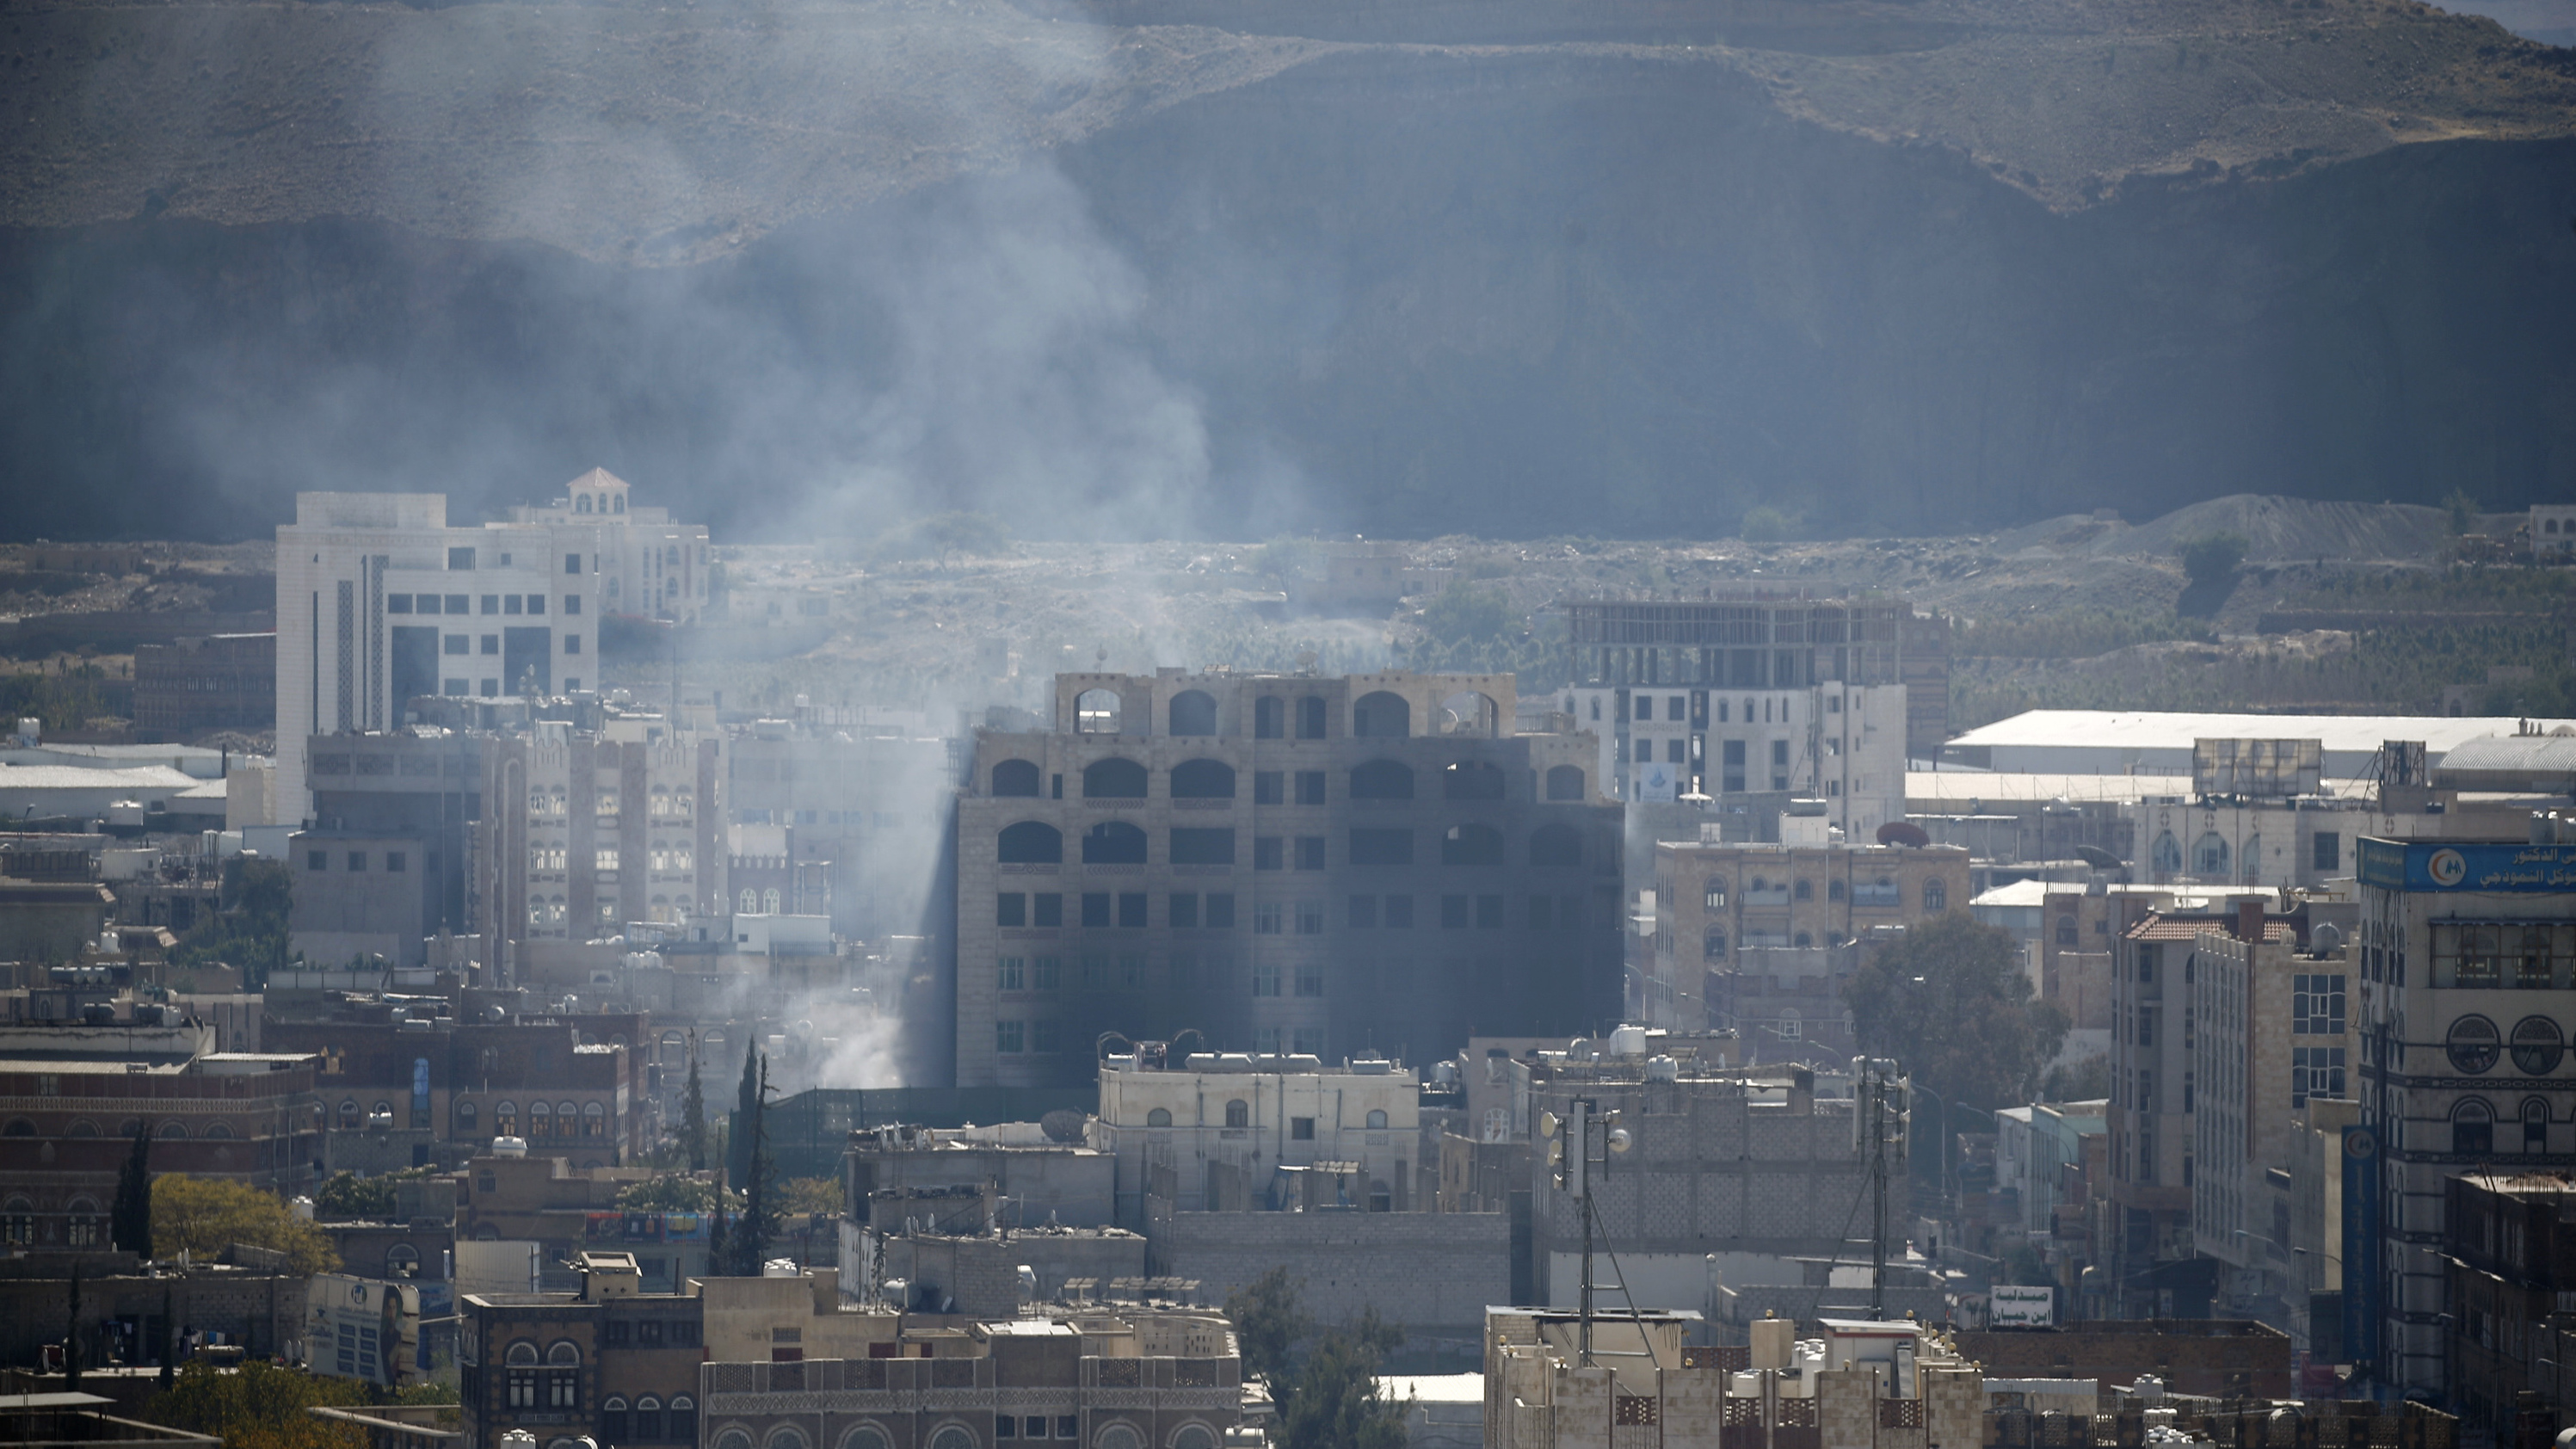 Bloody Battles Waged On The Streets Of Yemen's Capital, As Alliances Appear To Shift